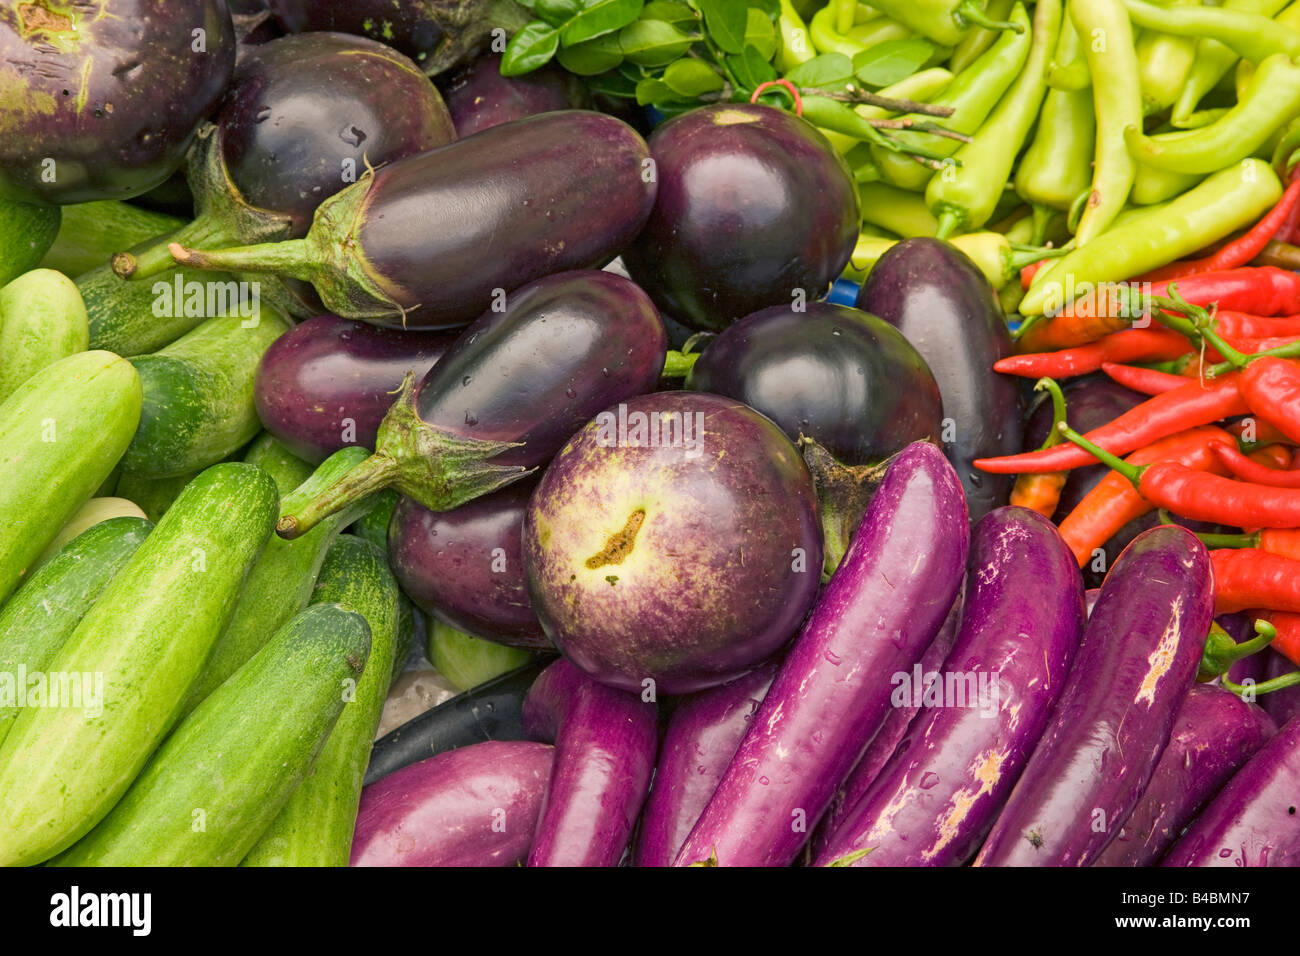 Asia, Malaysia, Kelantan State, Kota Bharu, Vegetables for sale in the towns central market - Stock Image